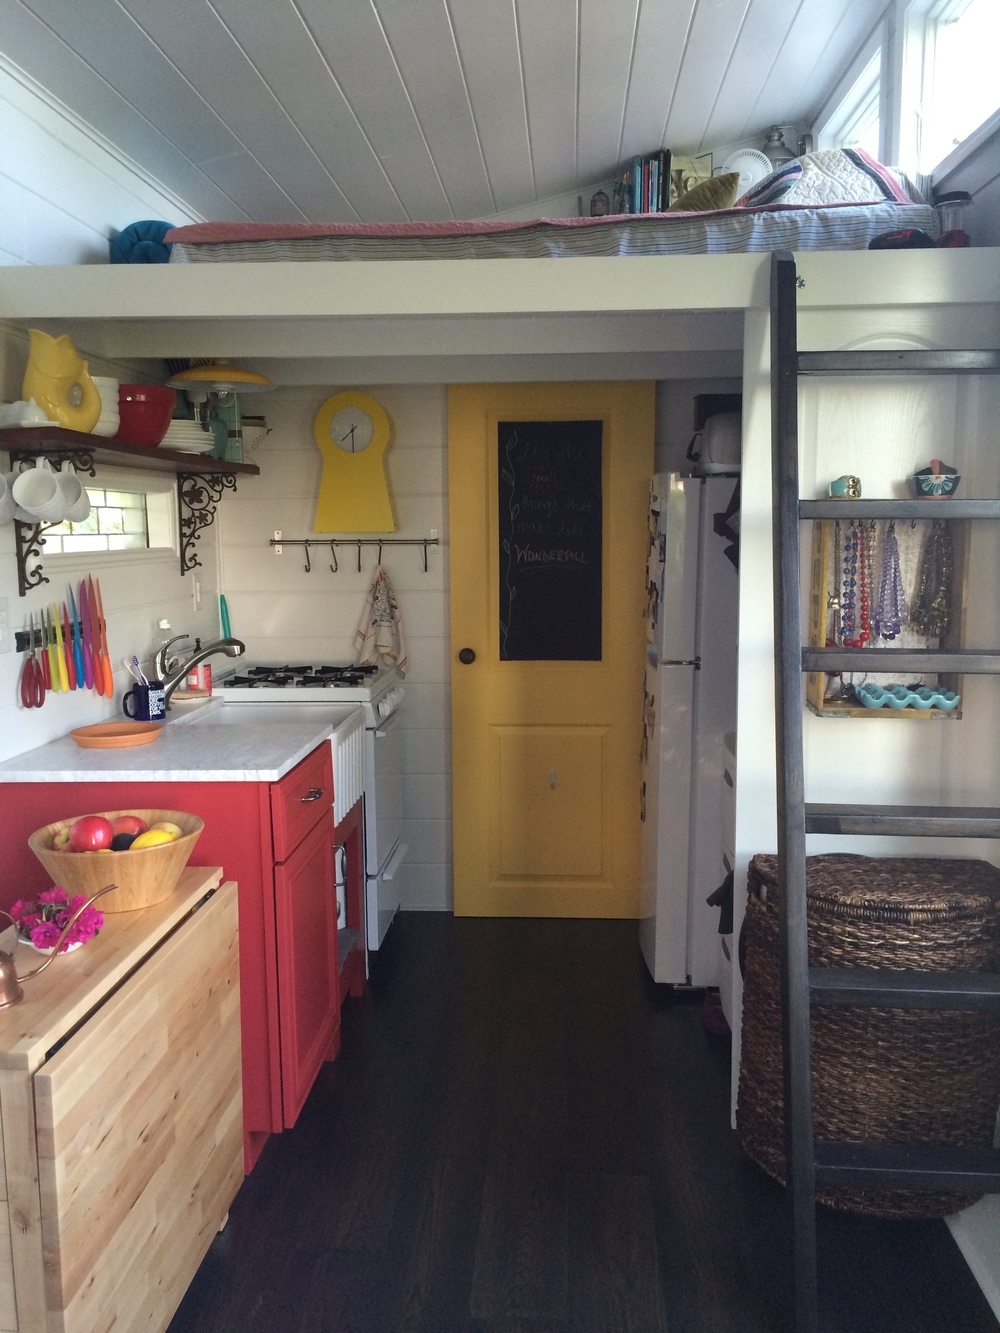 The Kitchen Area Is To The Left, Refrigerator And Closet On The Right  Behind The